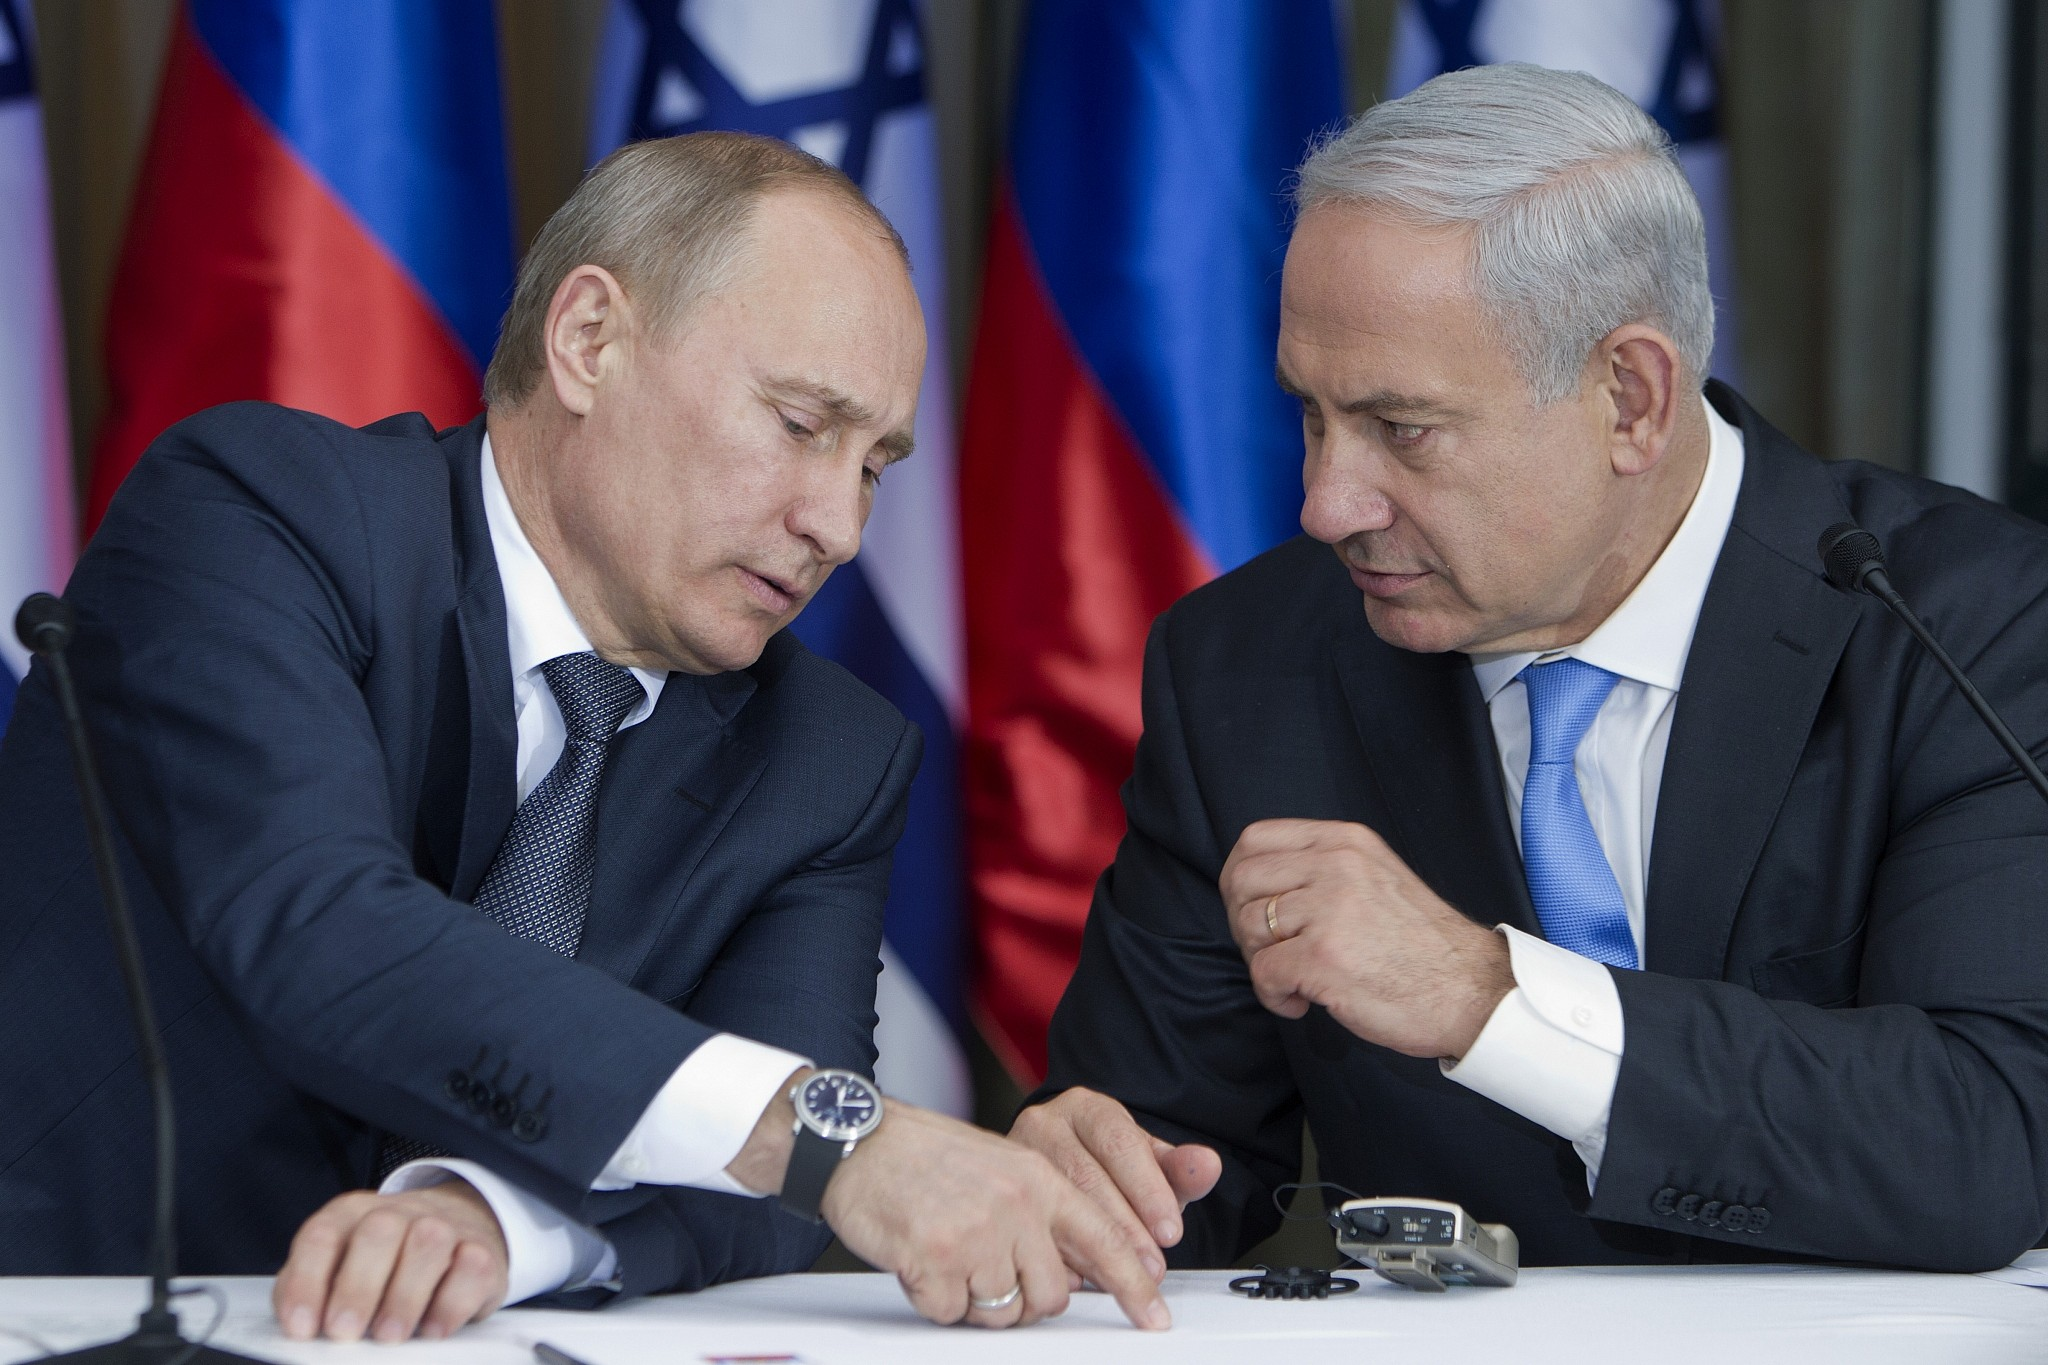 Israel and Iran both set to join Russia-led free trade zone | The